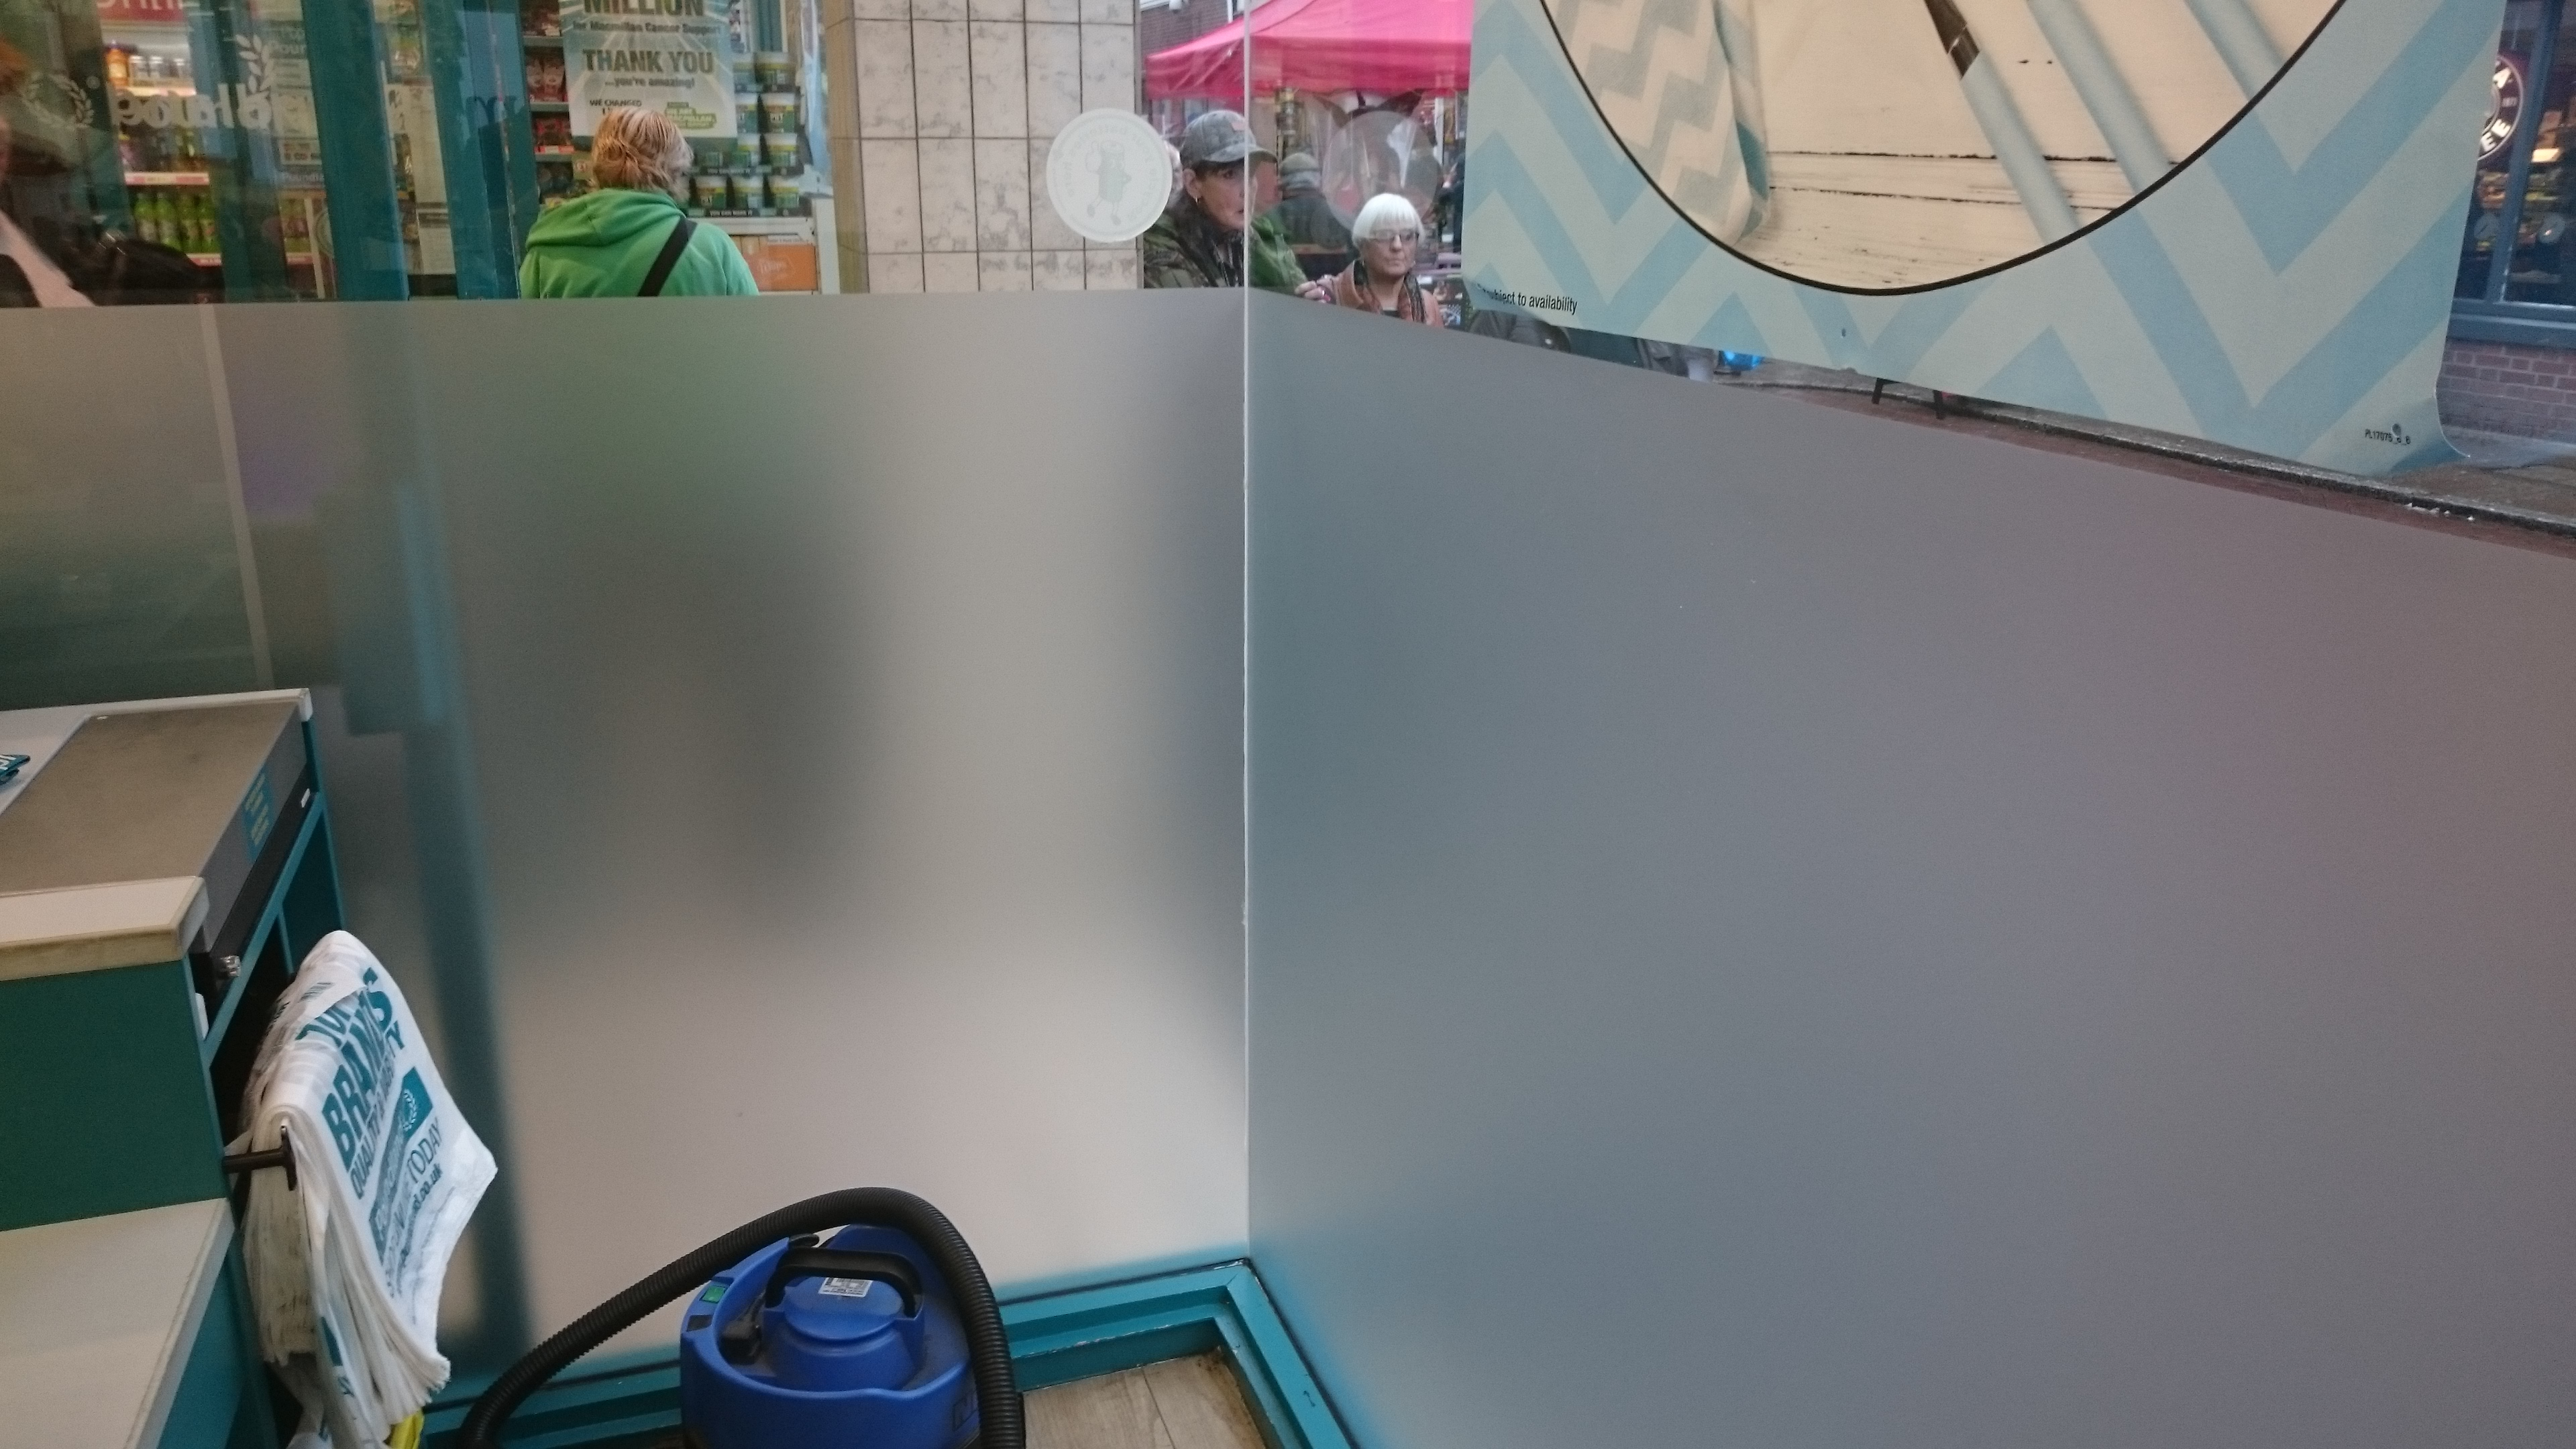 Refreshed crystal etch frosted window film applied to a shop window of a national chain high street shop. Tinting Express Barnstaple